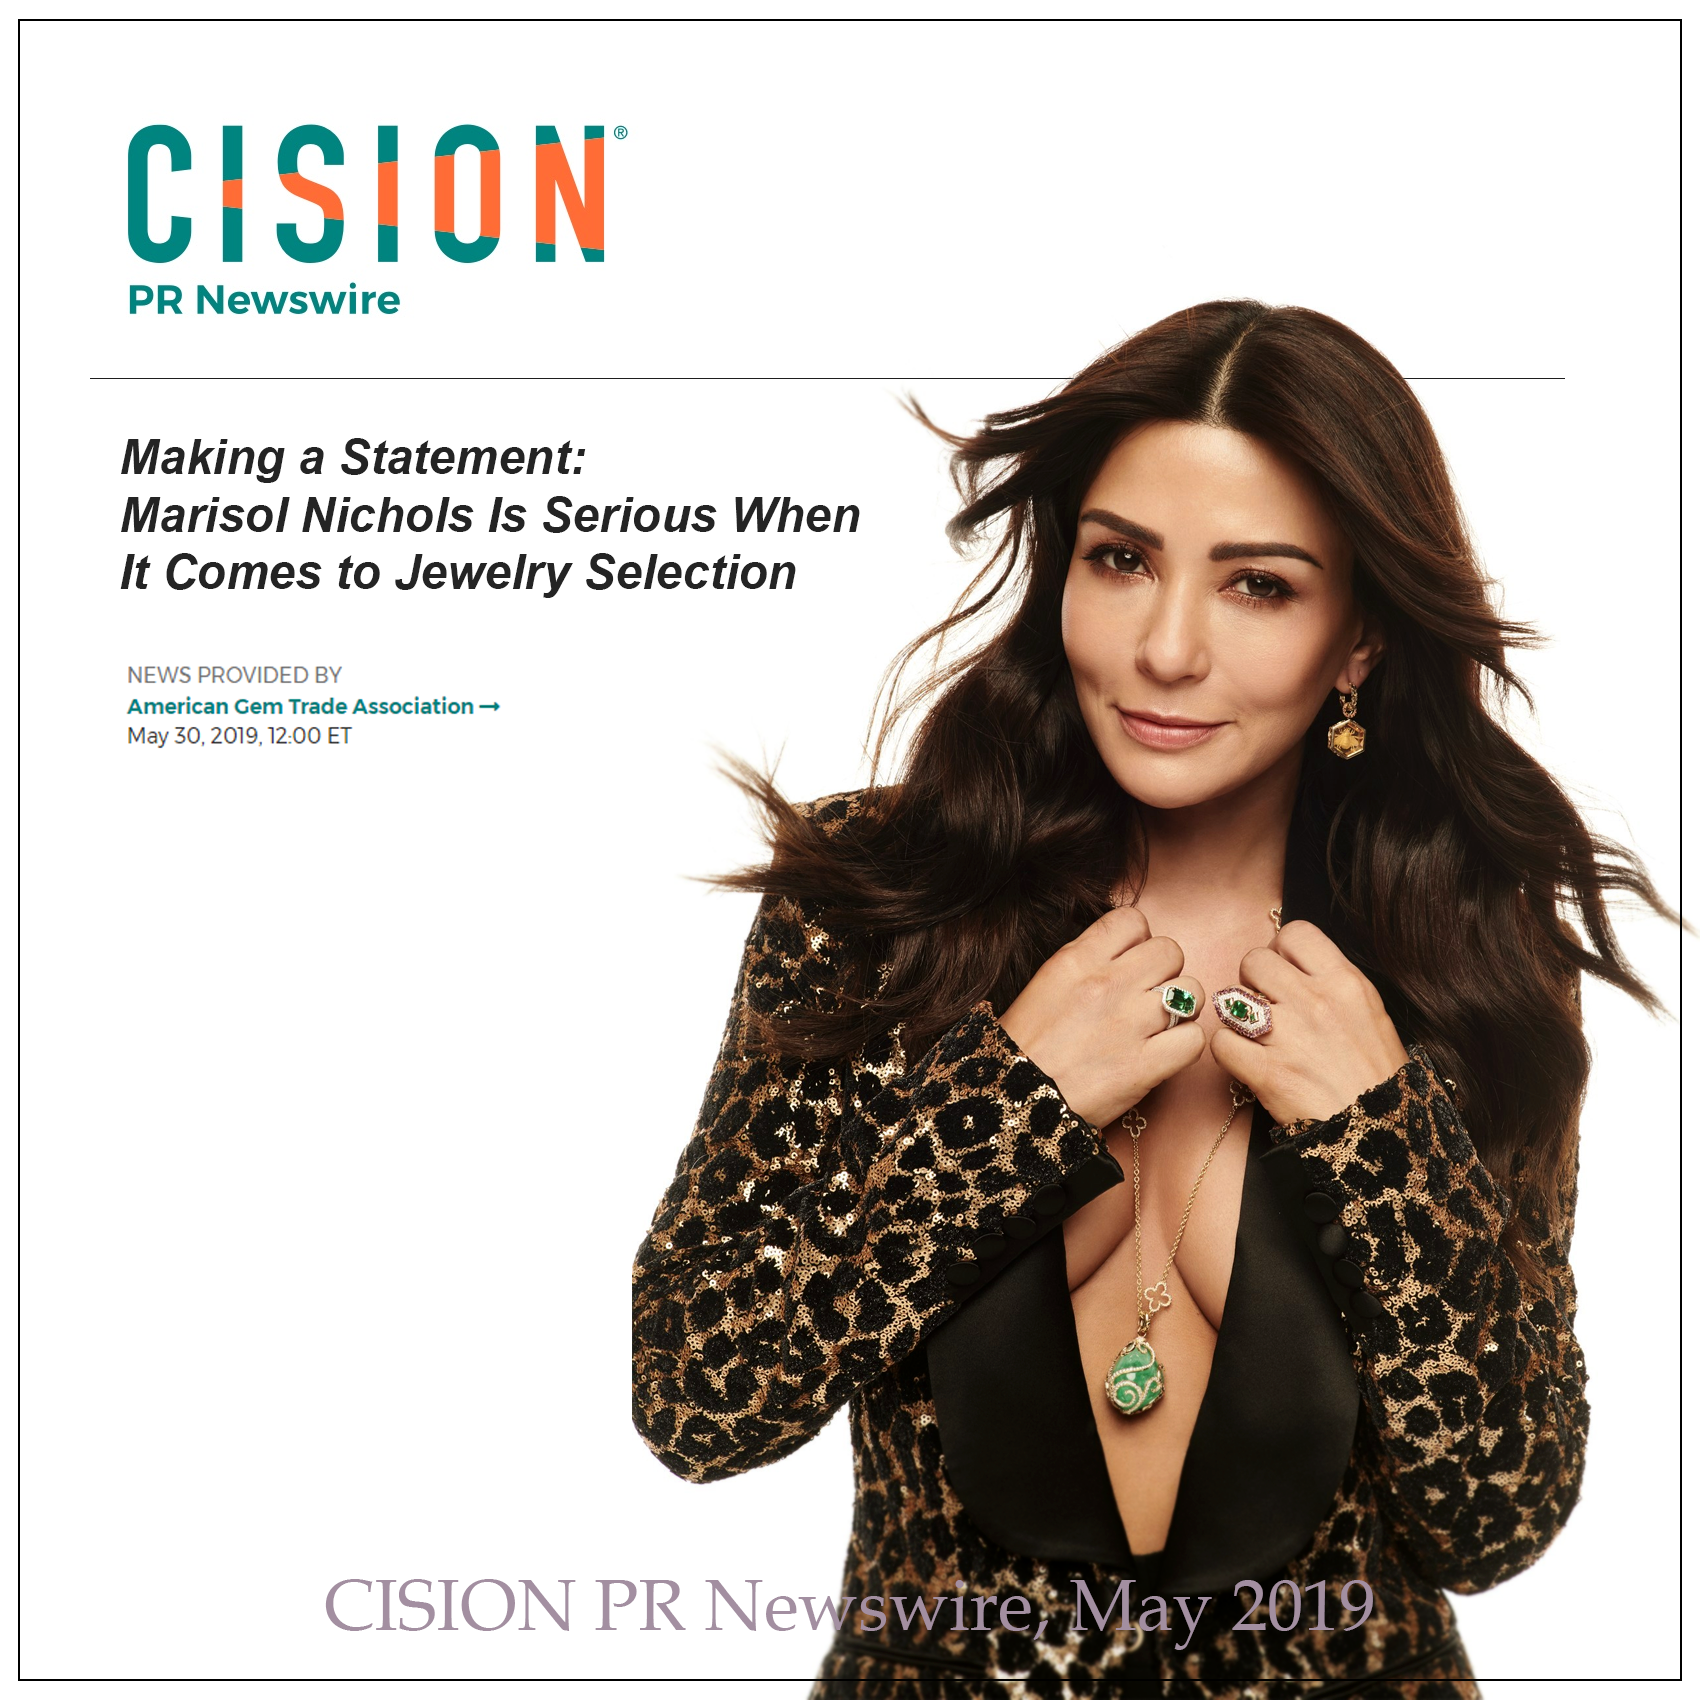 cision-pr-newswire-may-2019.png